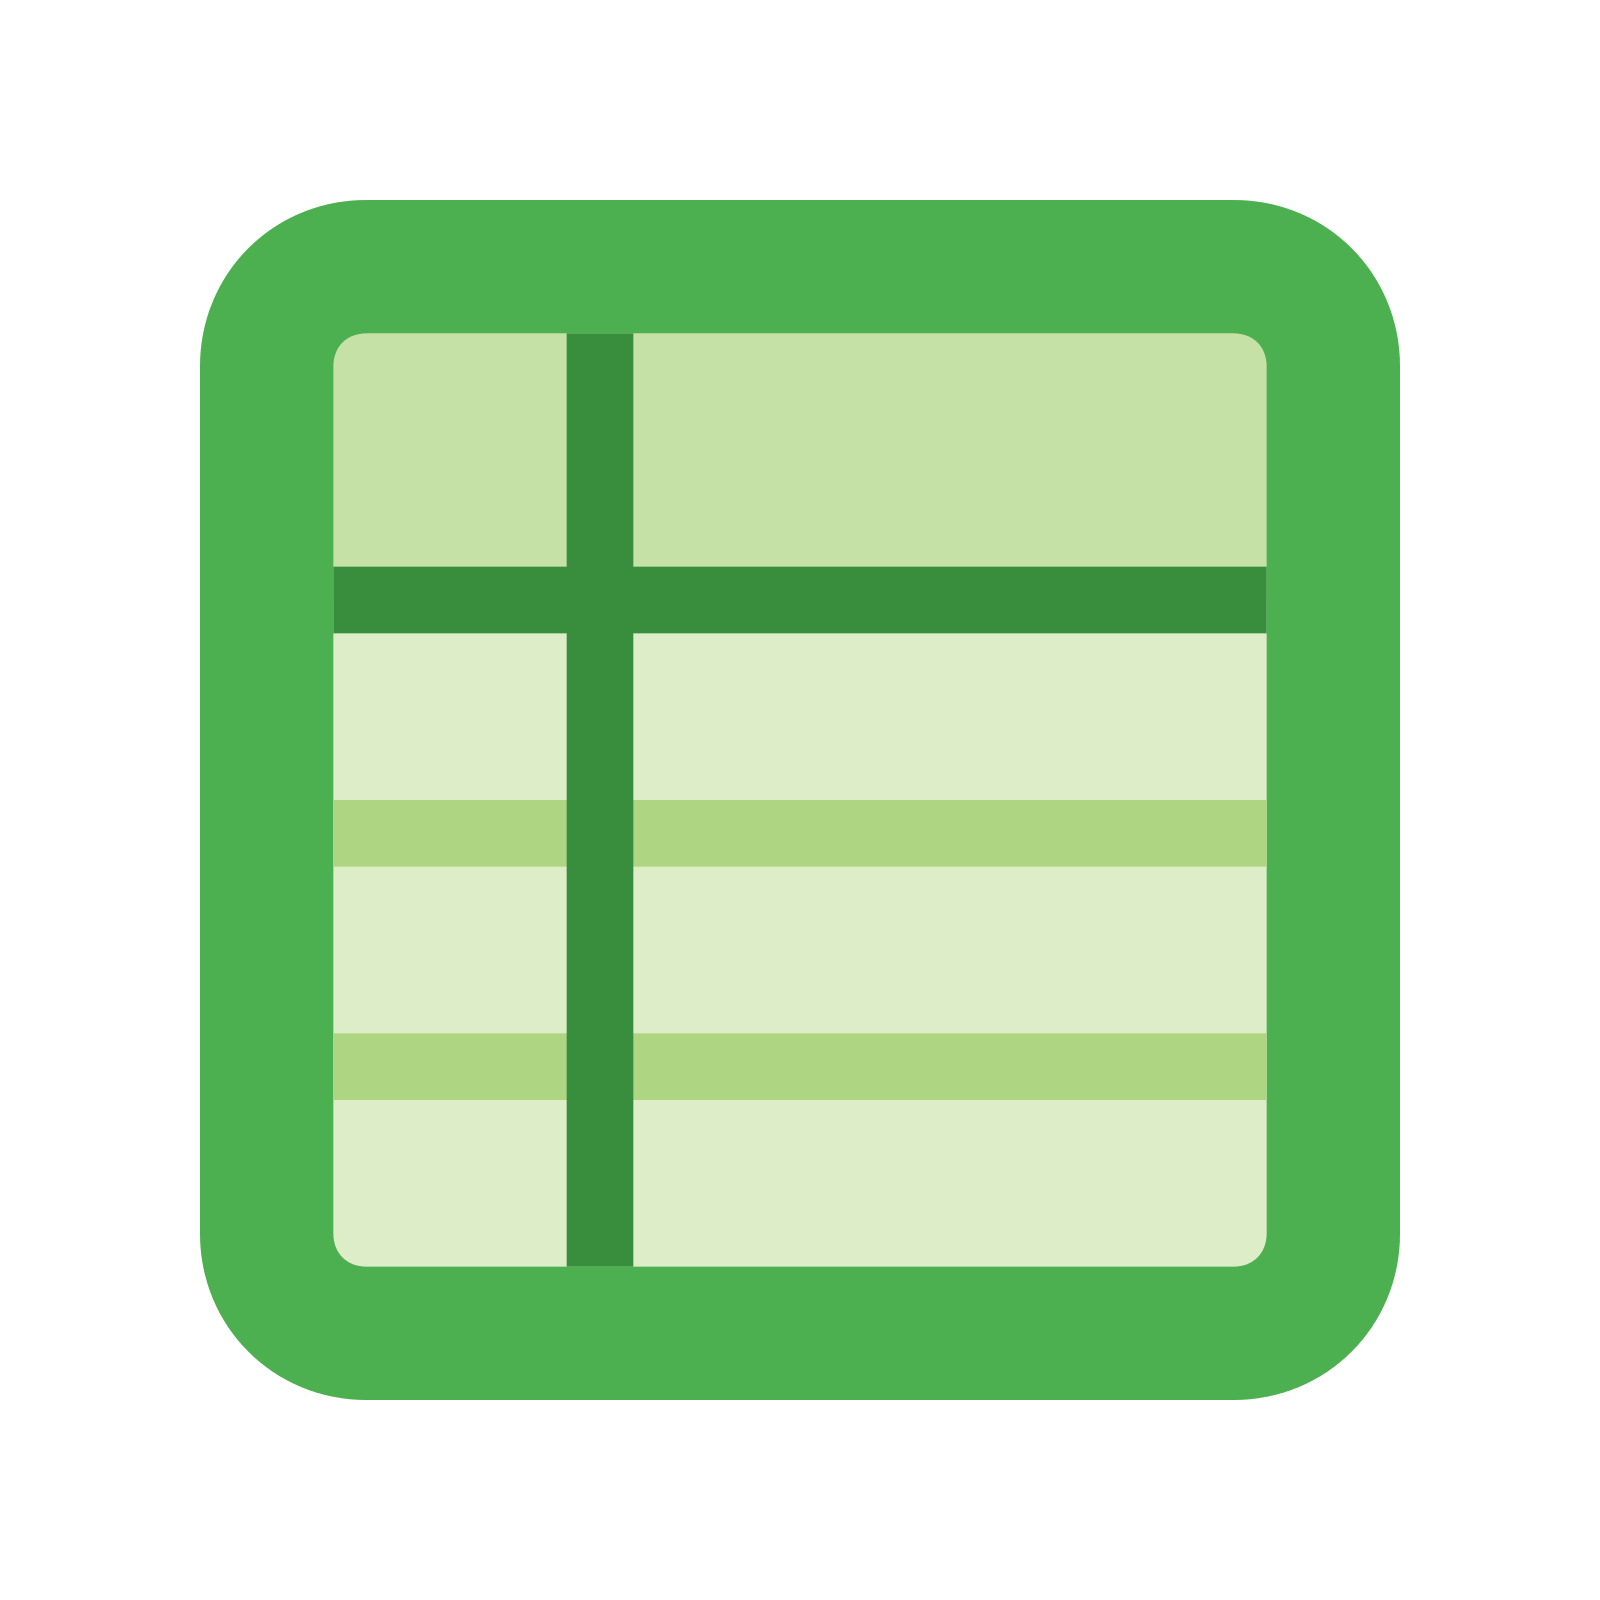 google sheets icon png